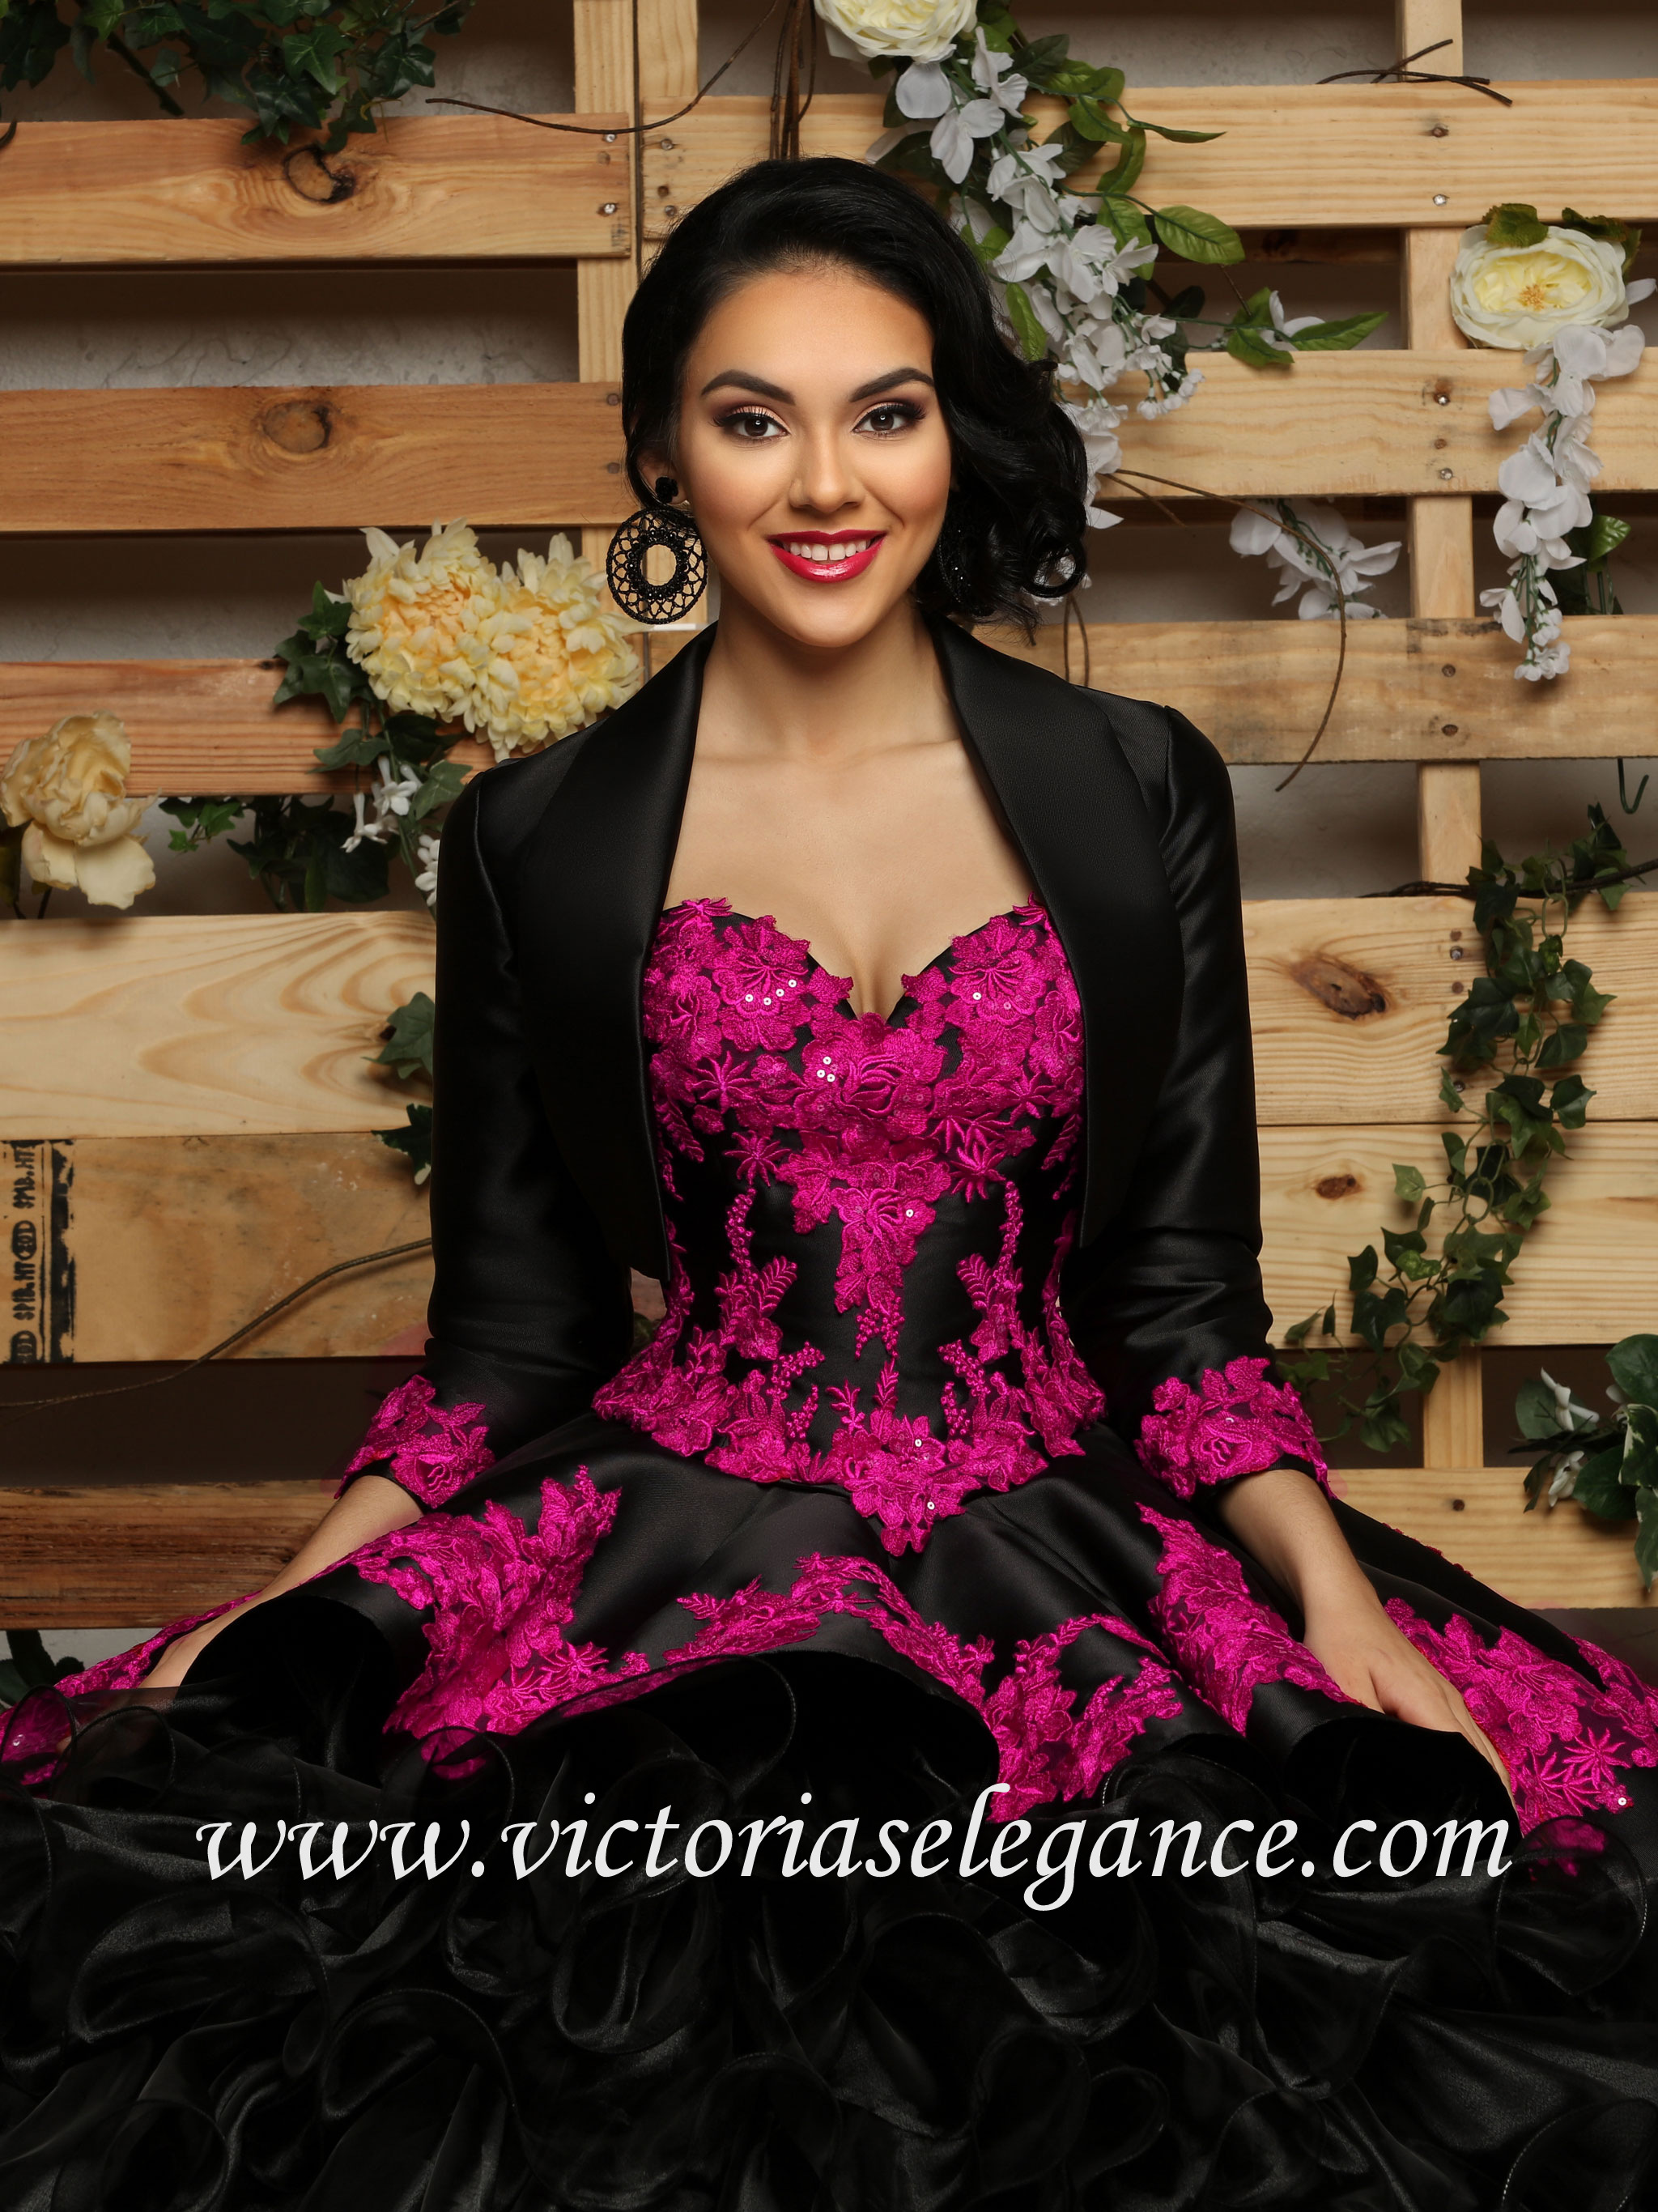 f2649ccd3 Quinceanera Dresses Charro Style For Sale